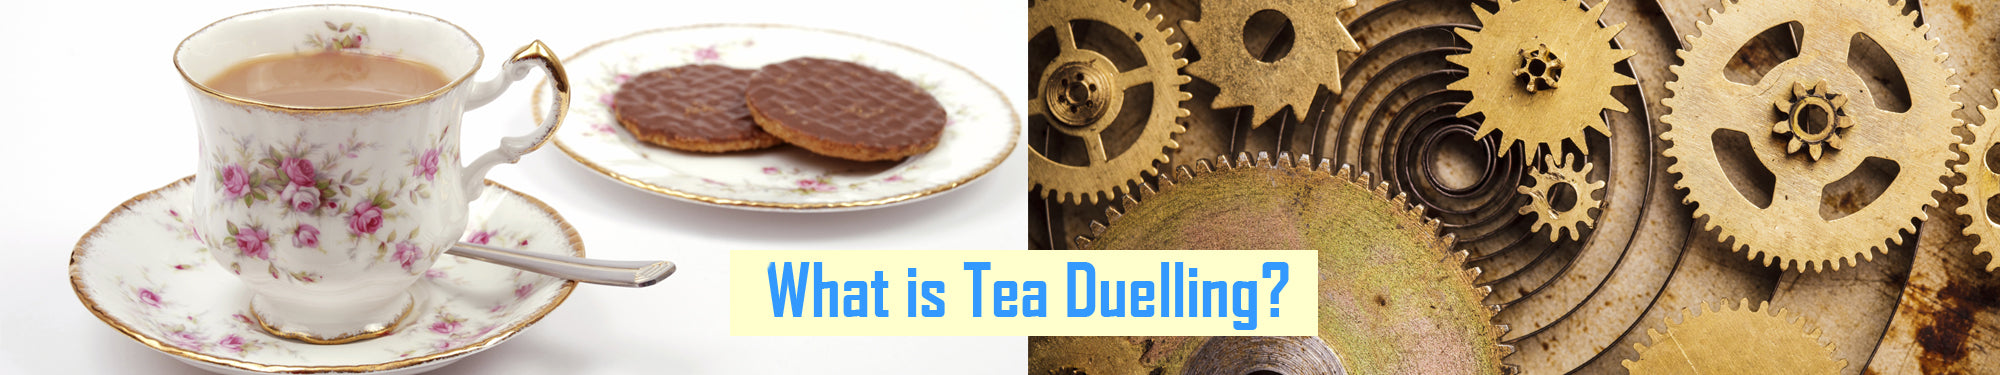 What is Tea Duelling | Steampunk Activities | Steampunk UK